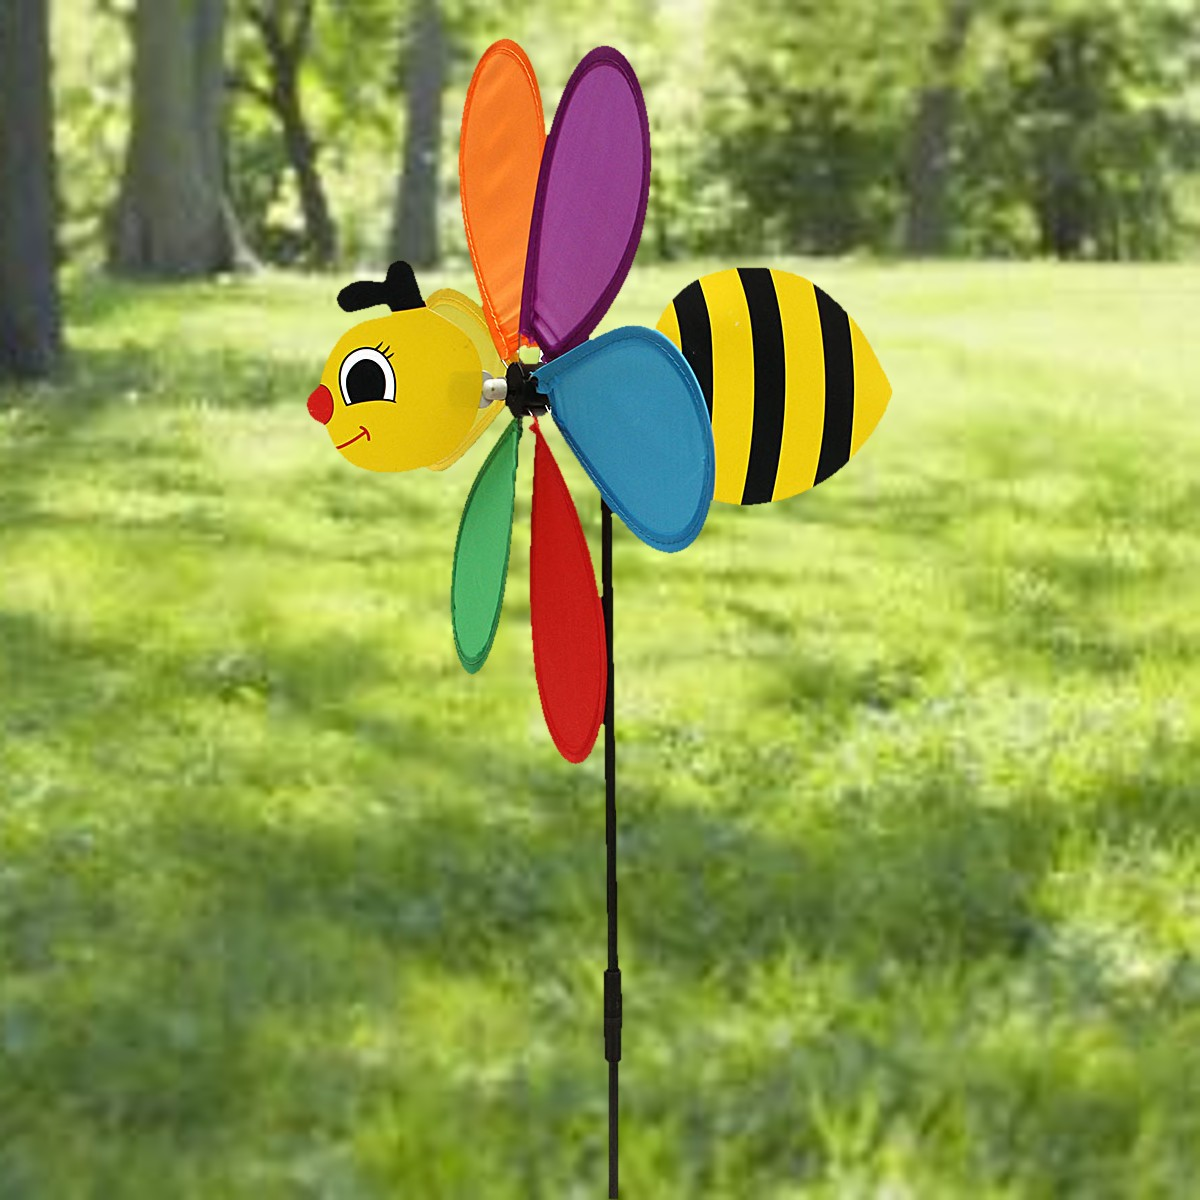 Lawn windmills ornamental - 1pc Animal Bee Windmill Wind Spinner Whirligig Garden Lawn Camping Decorative Crafts Accessories Kids Outdoor Toys